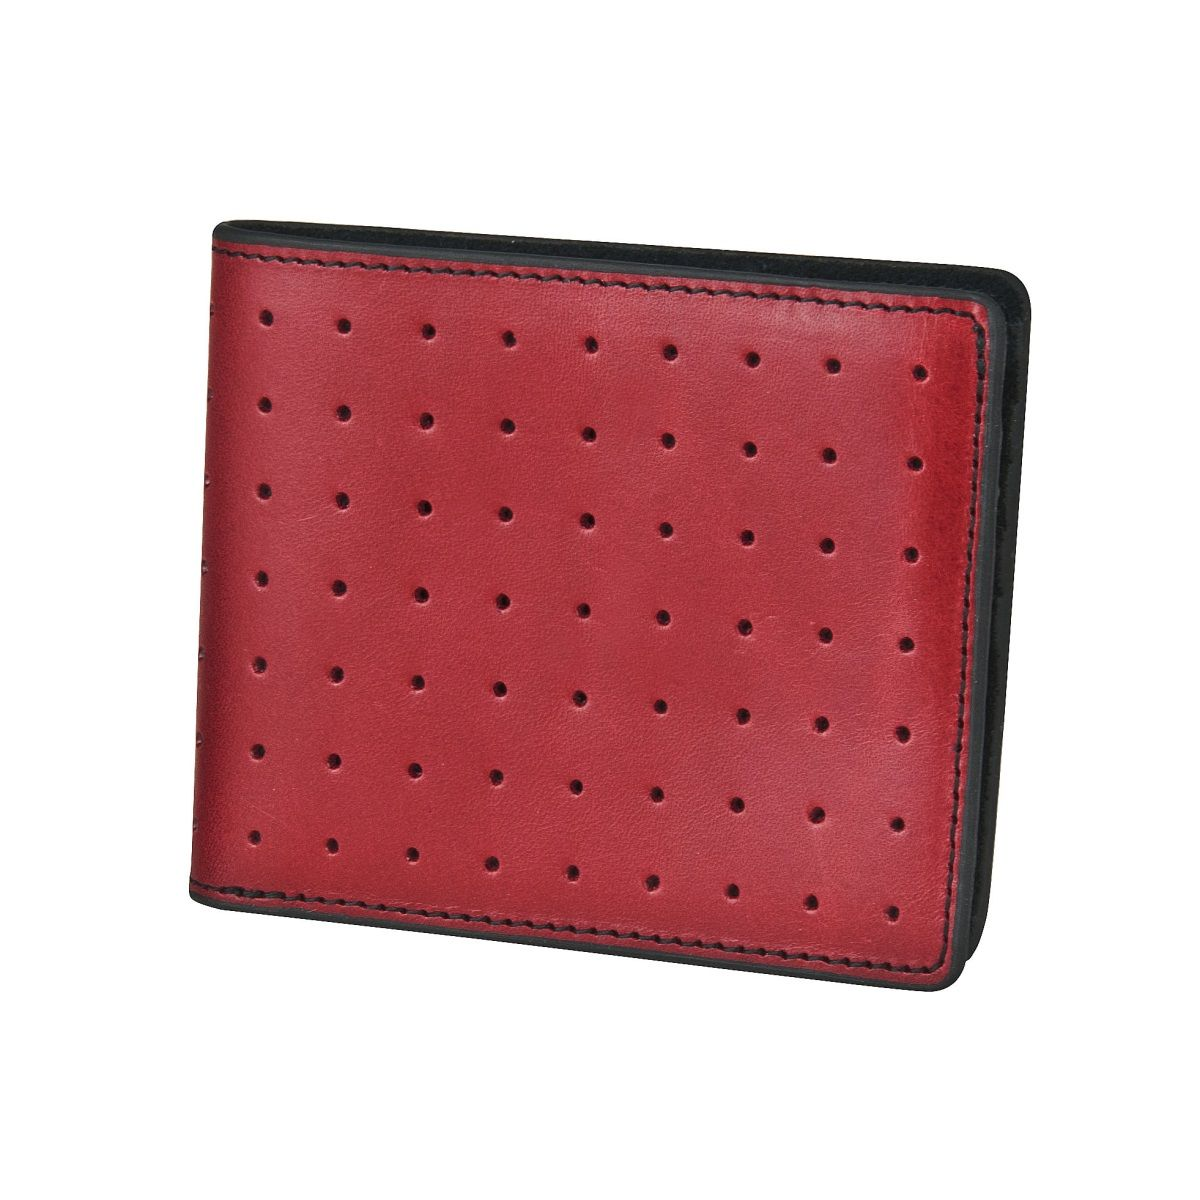 J.FOLD Loungemaster Leather Wallet  - Red